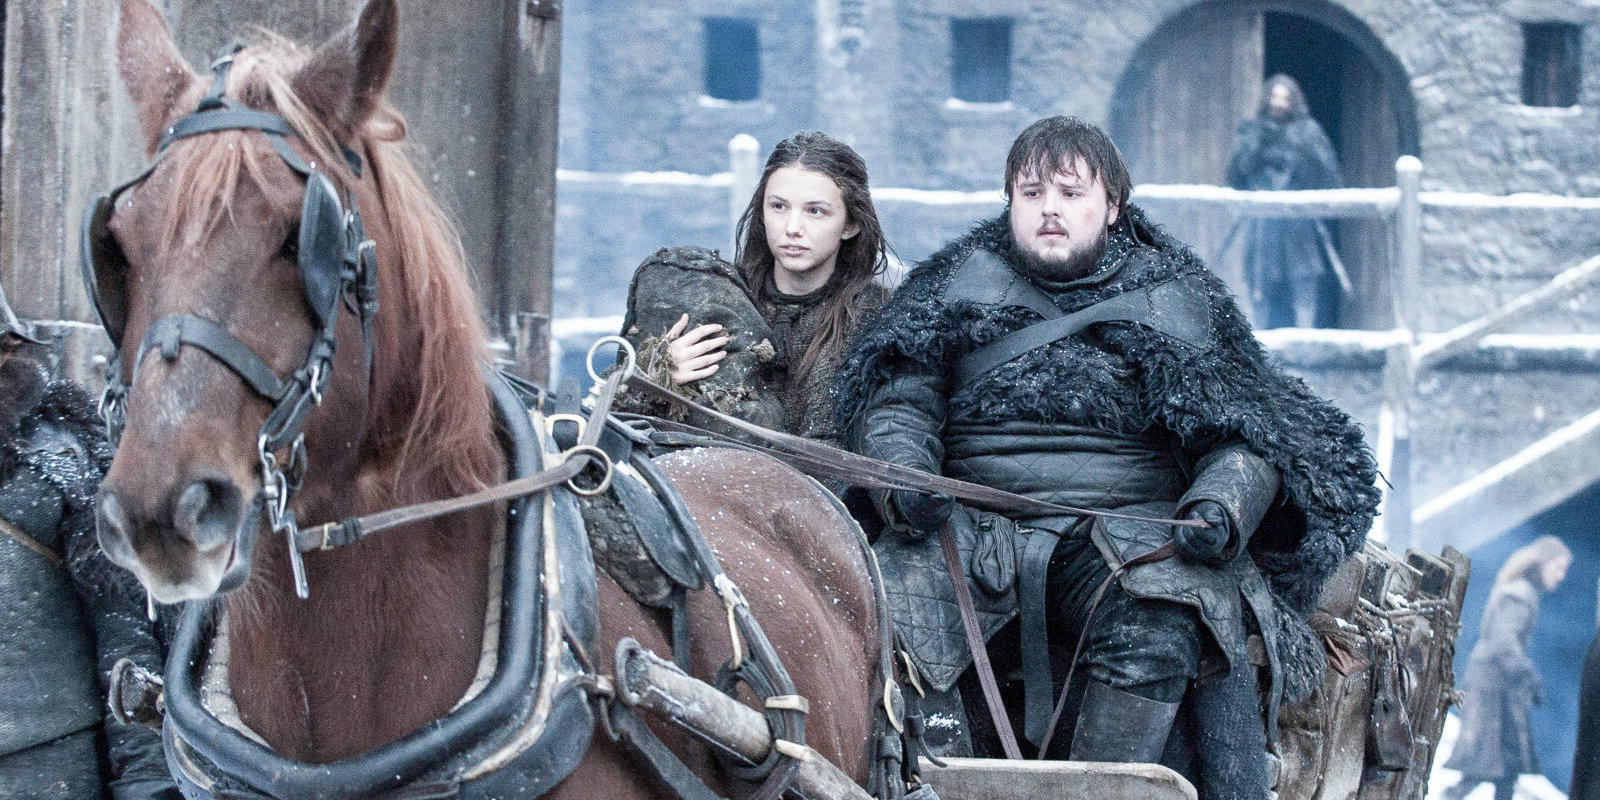 Game of Thrones season 6 - Sam and Gilly